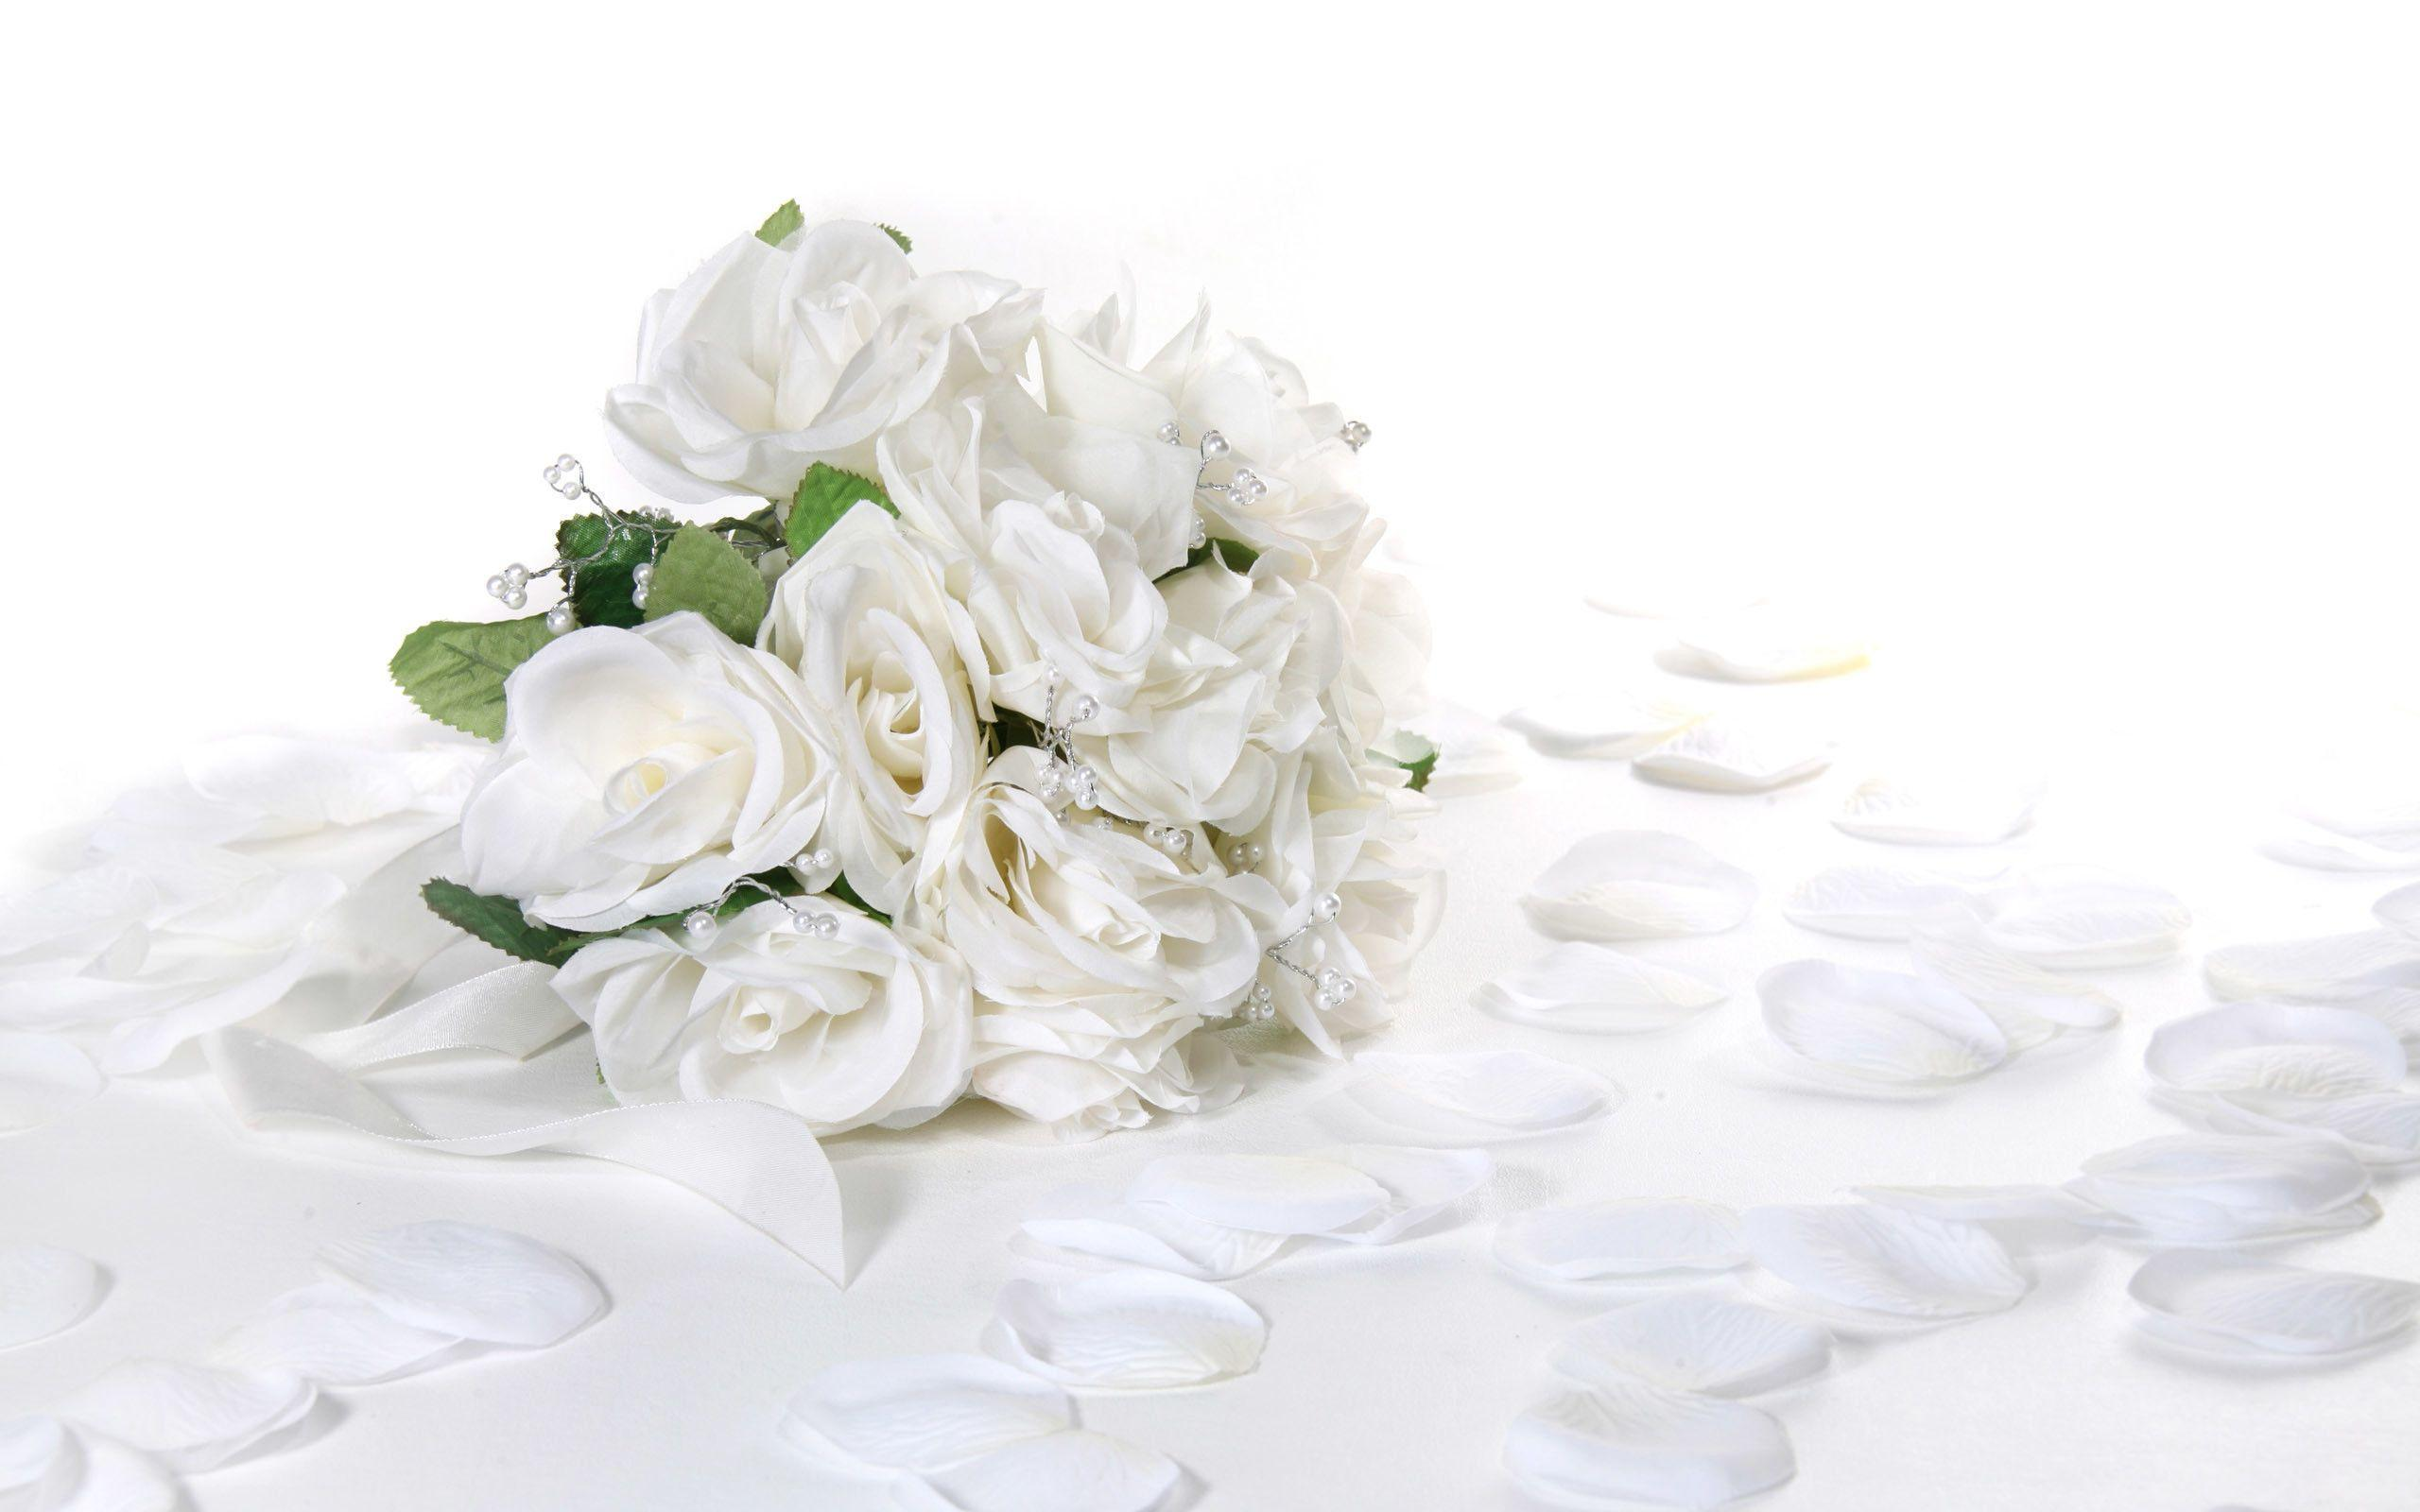 White Rose Wallpapers HD Background, Wallpapers, HD Wallpapers